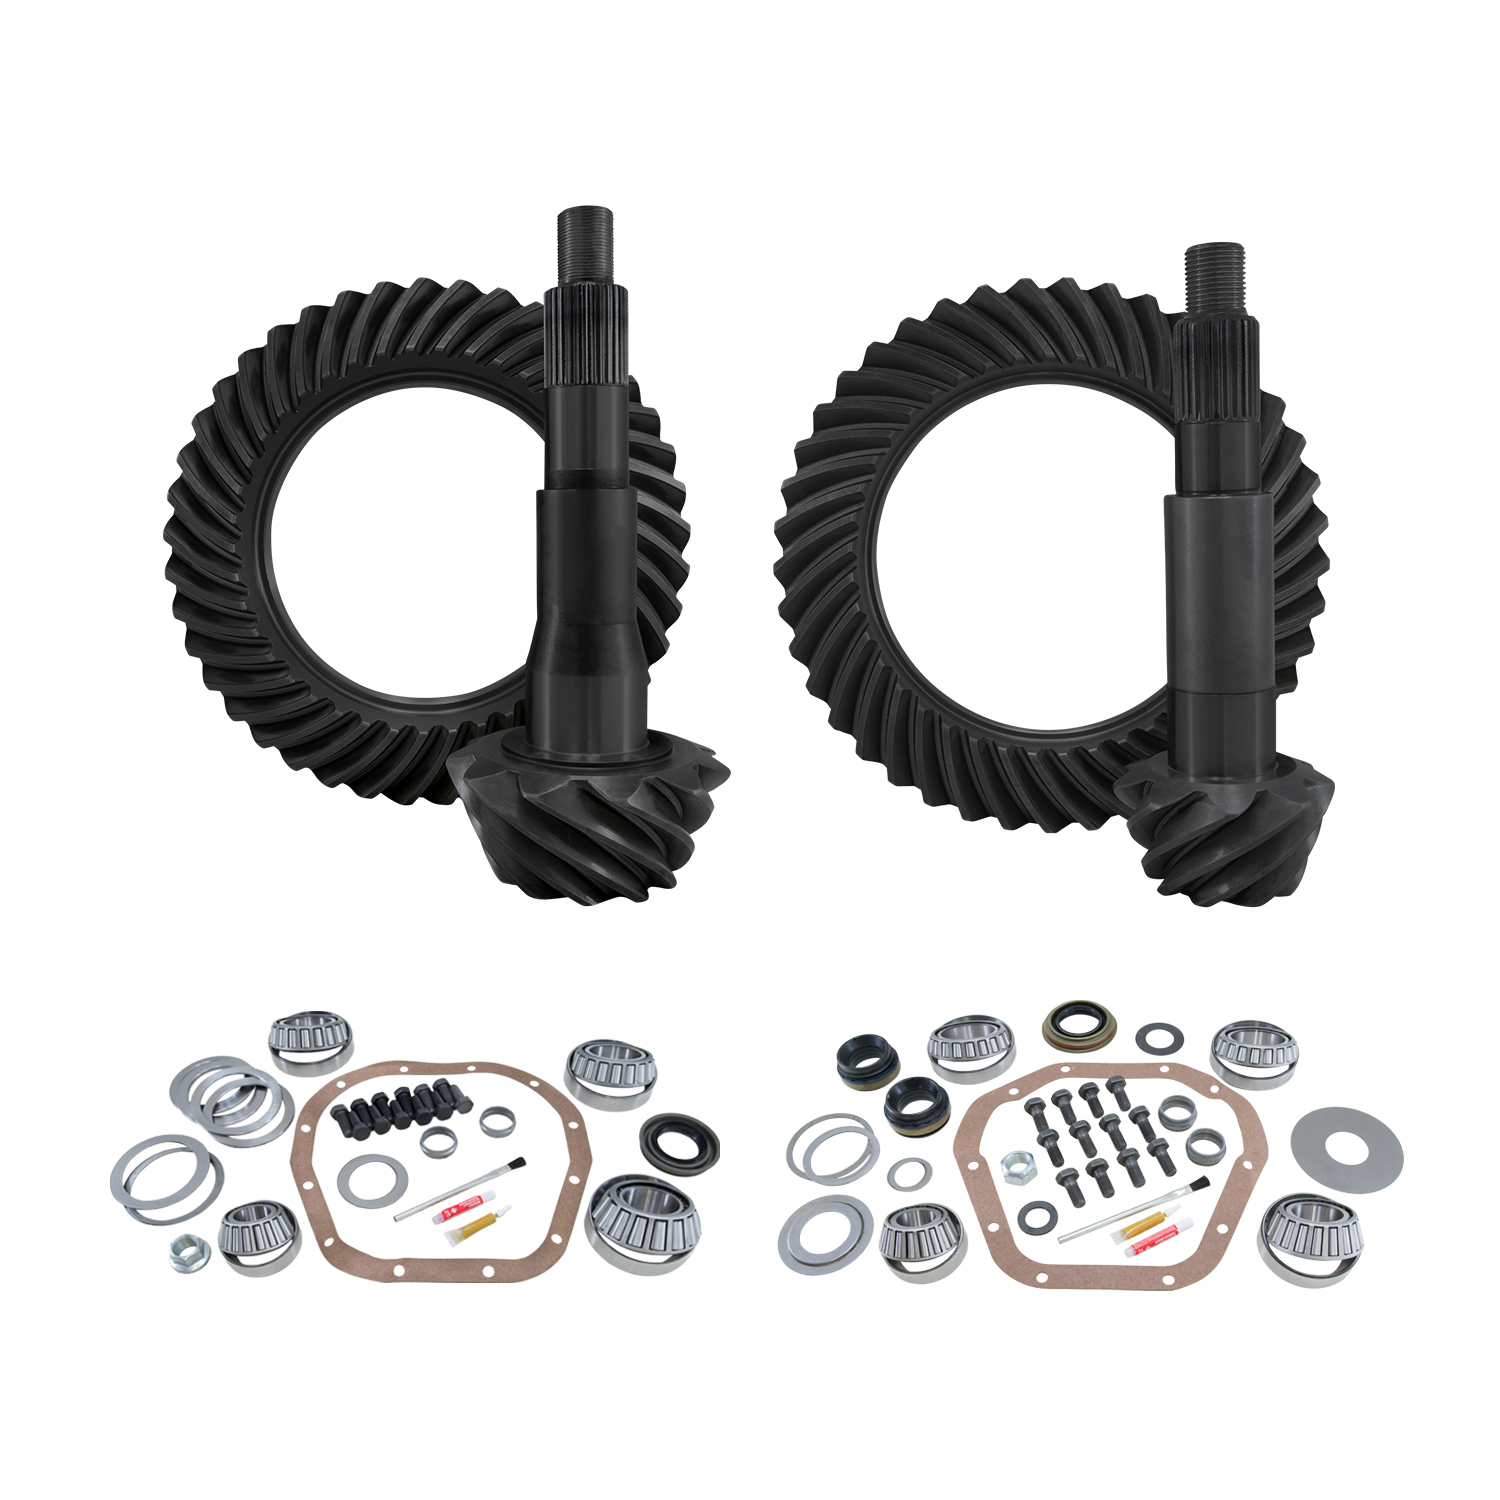 YGK133 - Yukon Complete Gear and Kit Pakage for 2008-2010 F250 and F350 Dana 60 Thick with 4:30 Gear Ratio